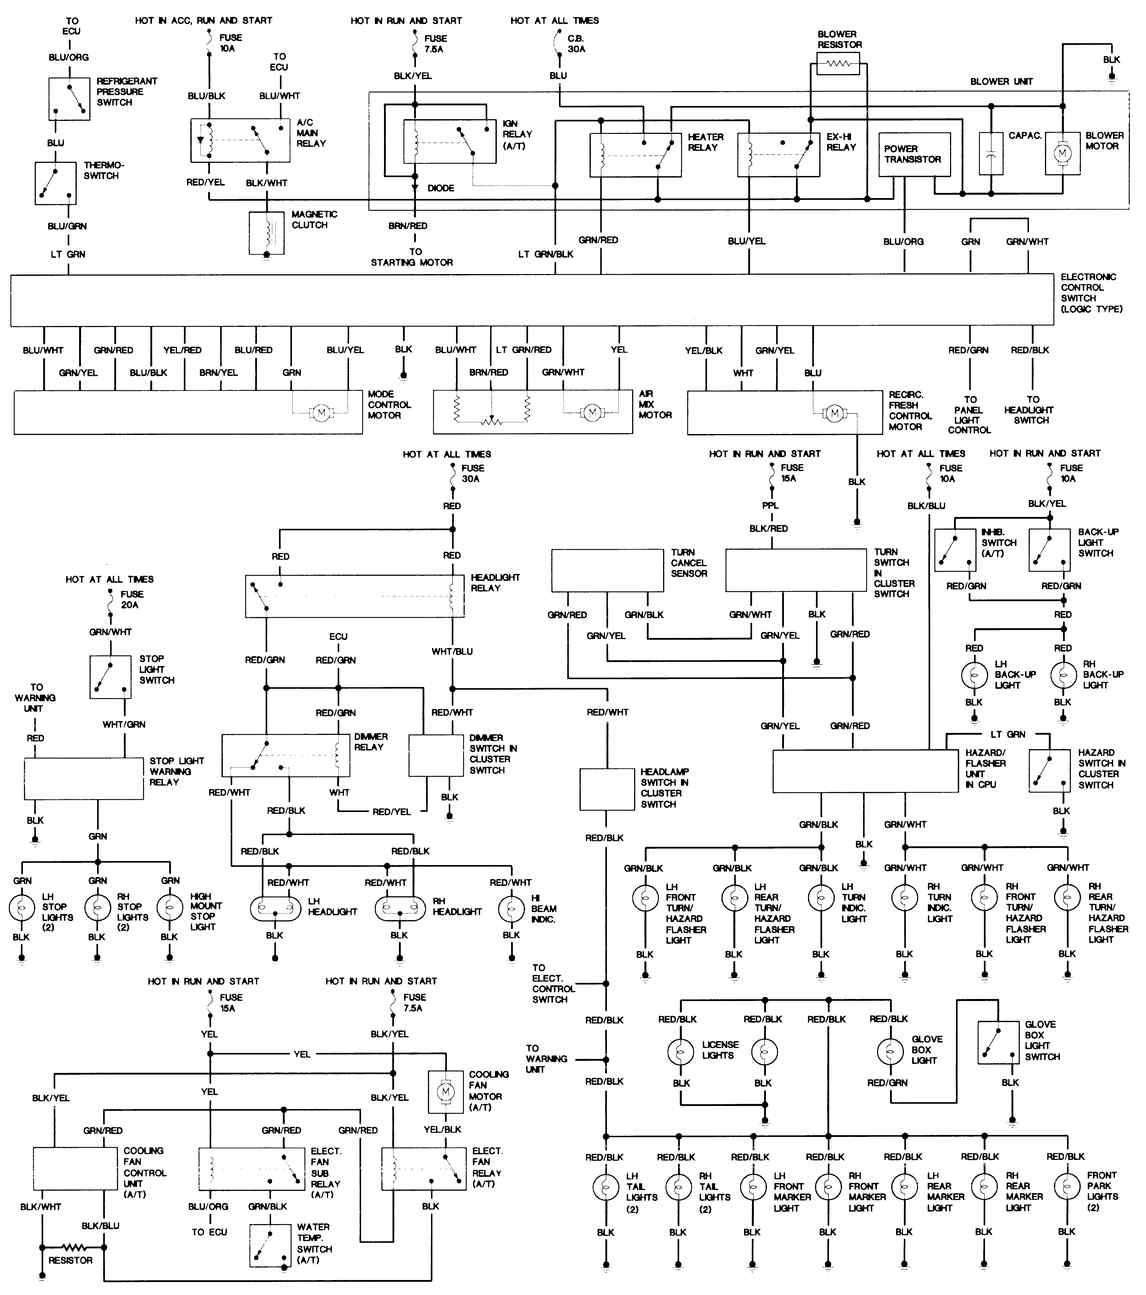 85816144l wiring diagrams 1980 mazda rx7 wiring diagram at creativeand.co